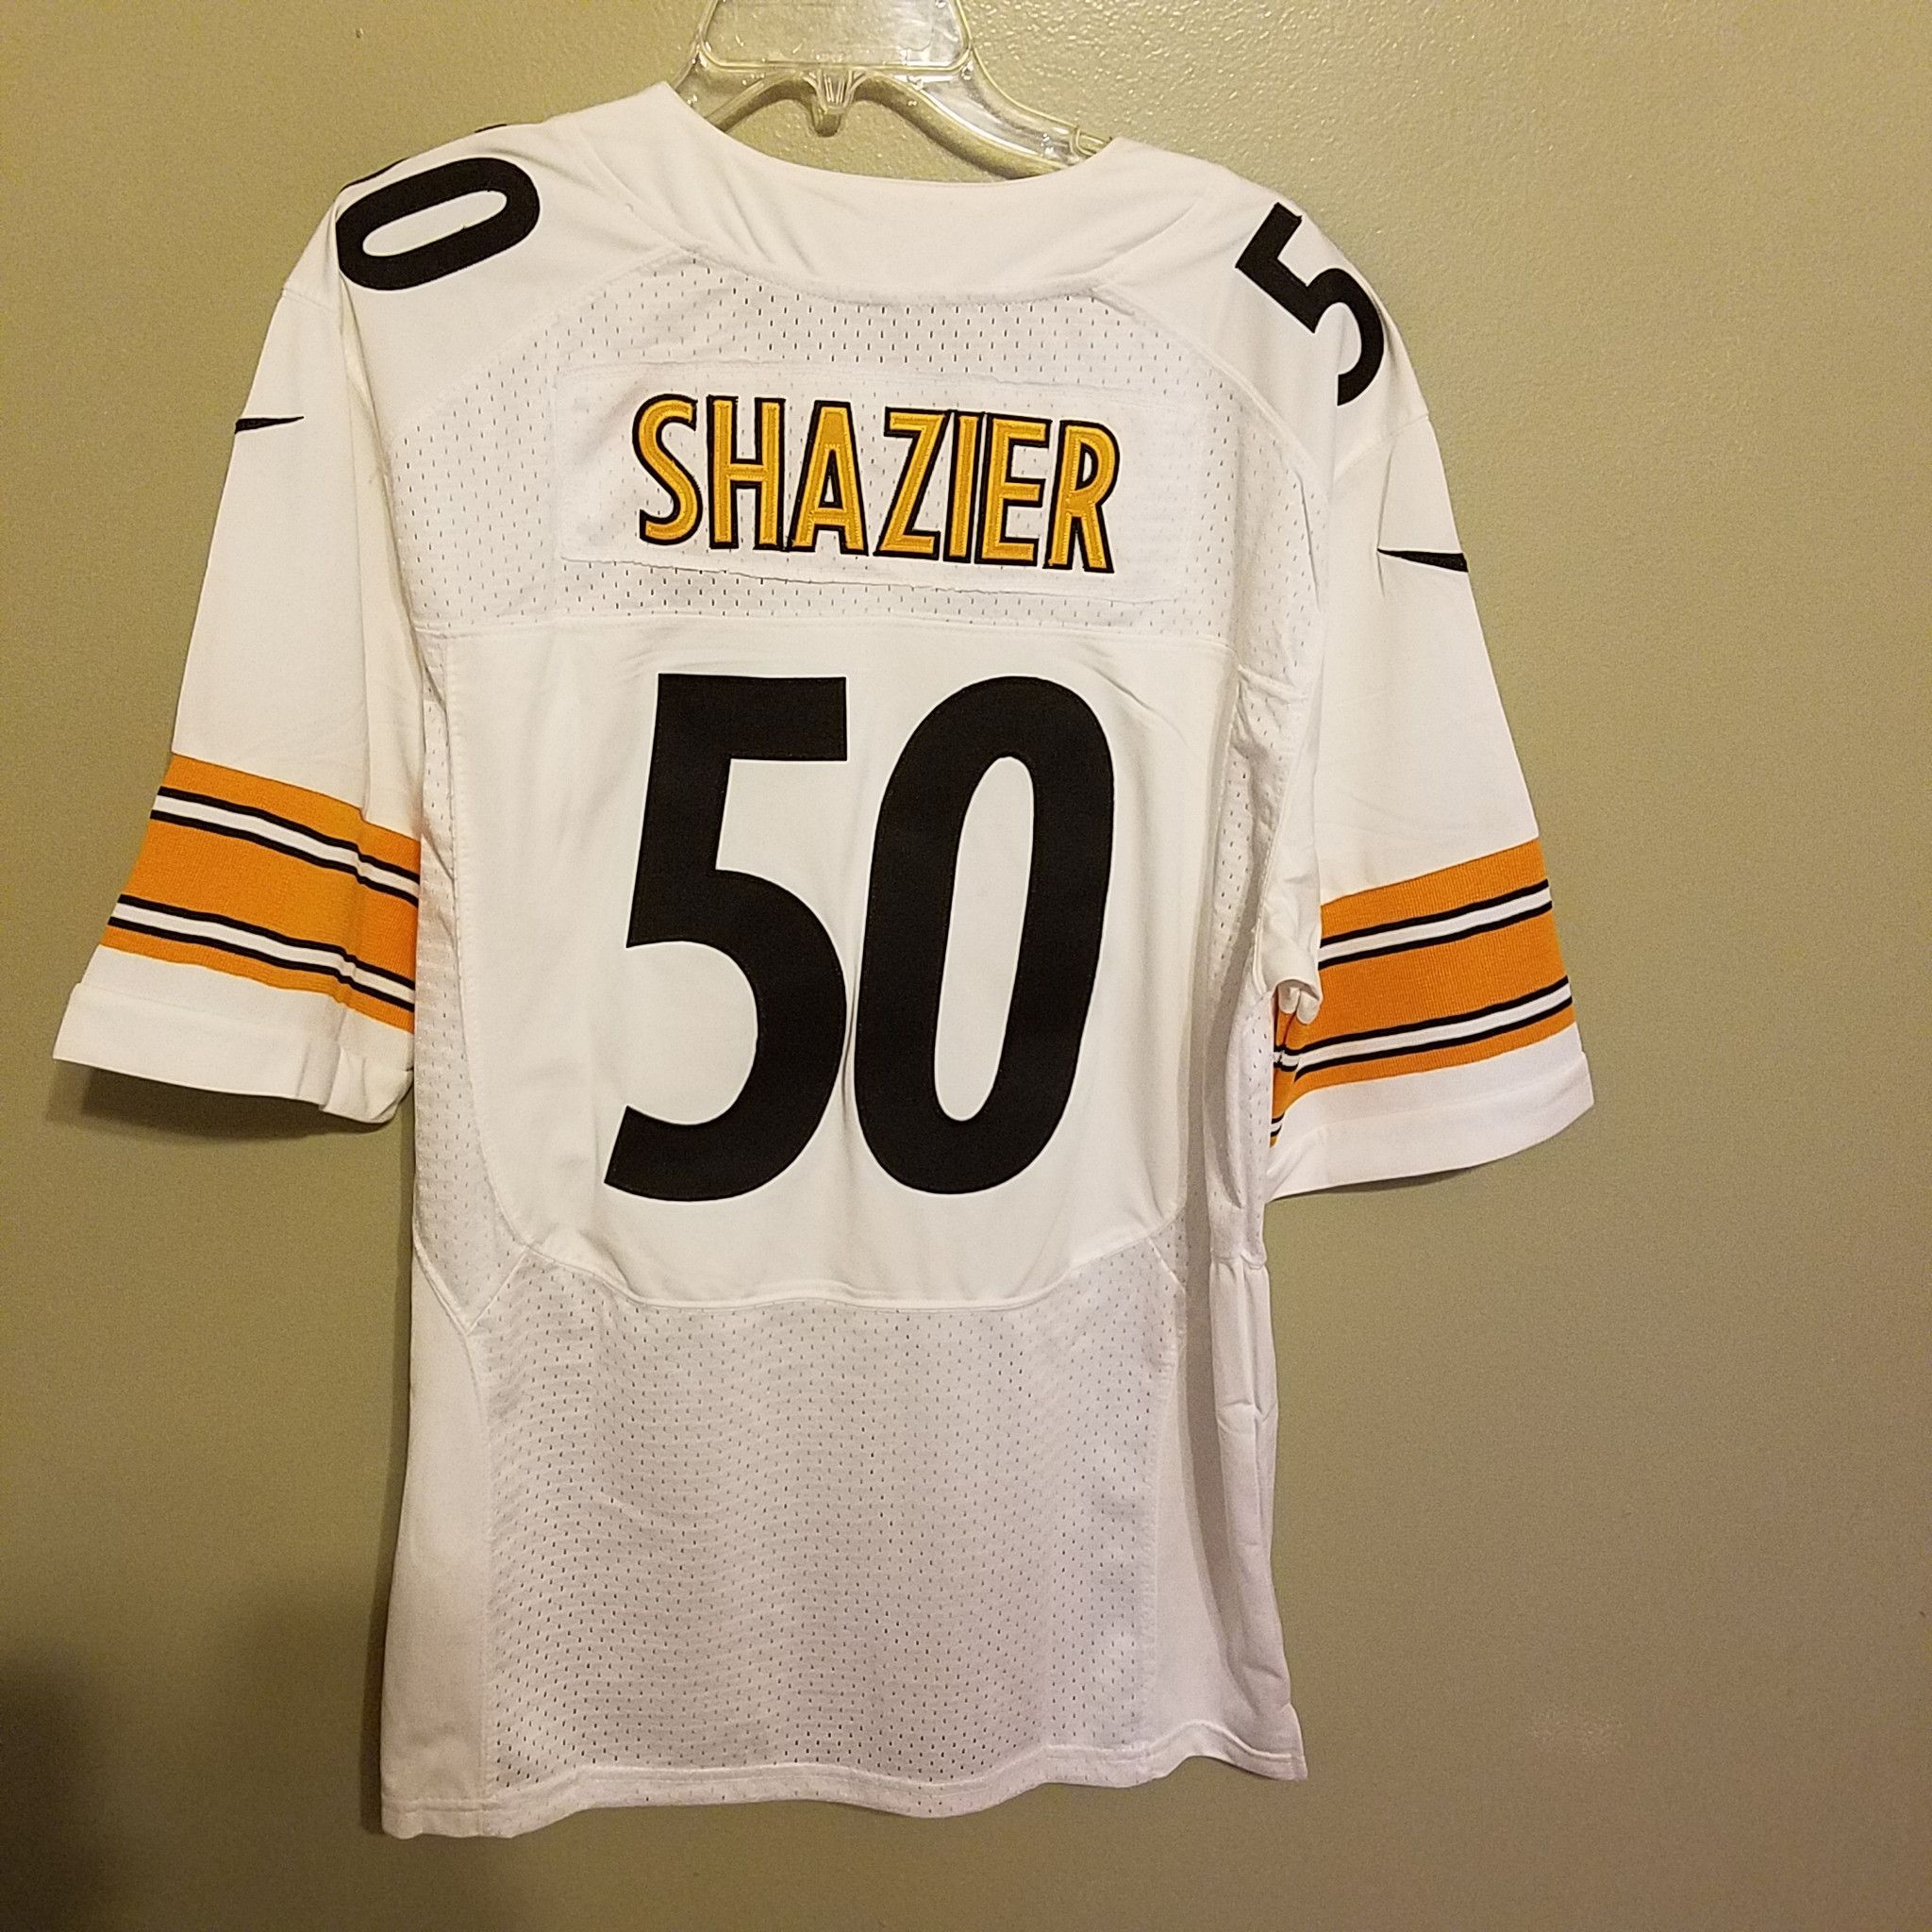 05531007a4e ... PITTSBURGH STEELERS RYAN SHAZIER NIKE FOOTBALL JERSEY SIZE 48 ON FIELD  ADULT .